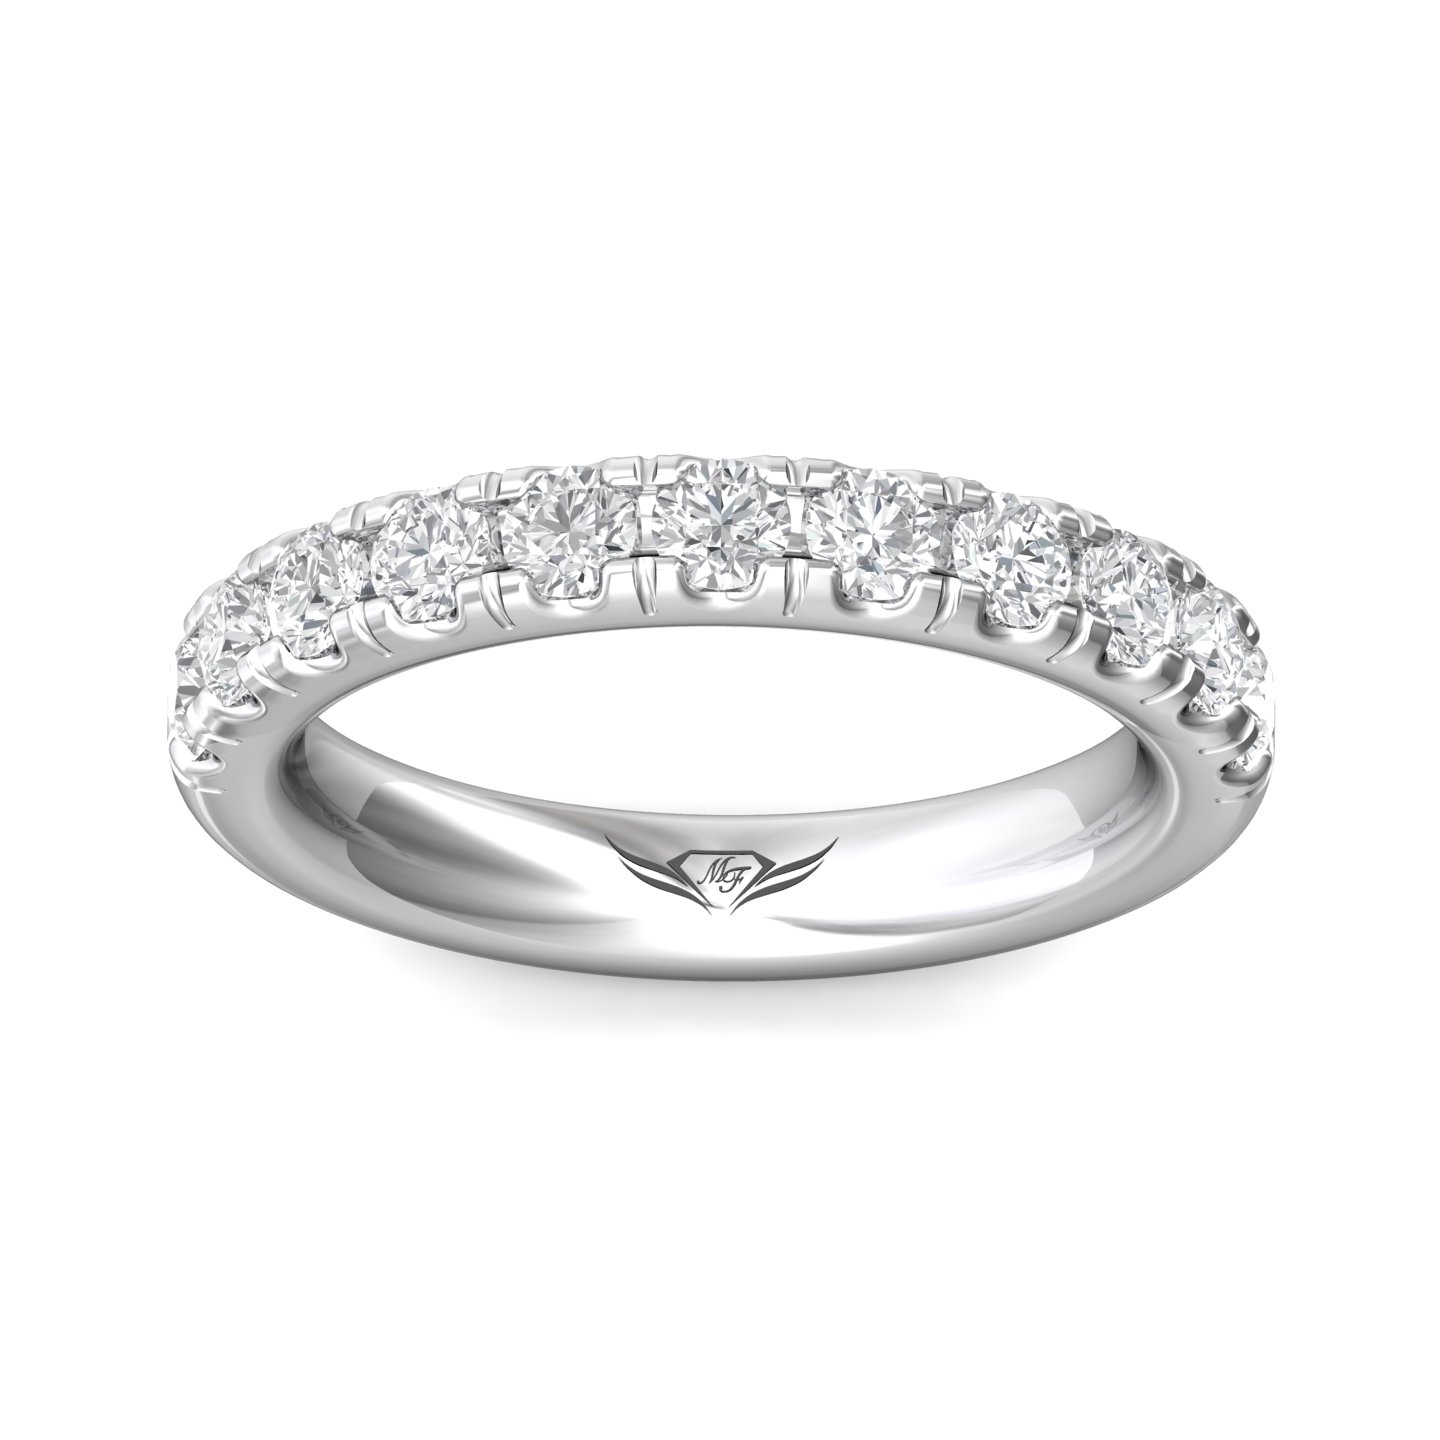 14K White Gold FlyerFit Micropave Cutdown Wedding Band Image 3 Grogan Jewelers Florence, AL